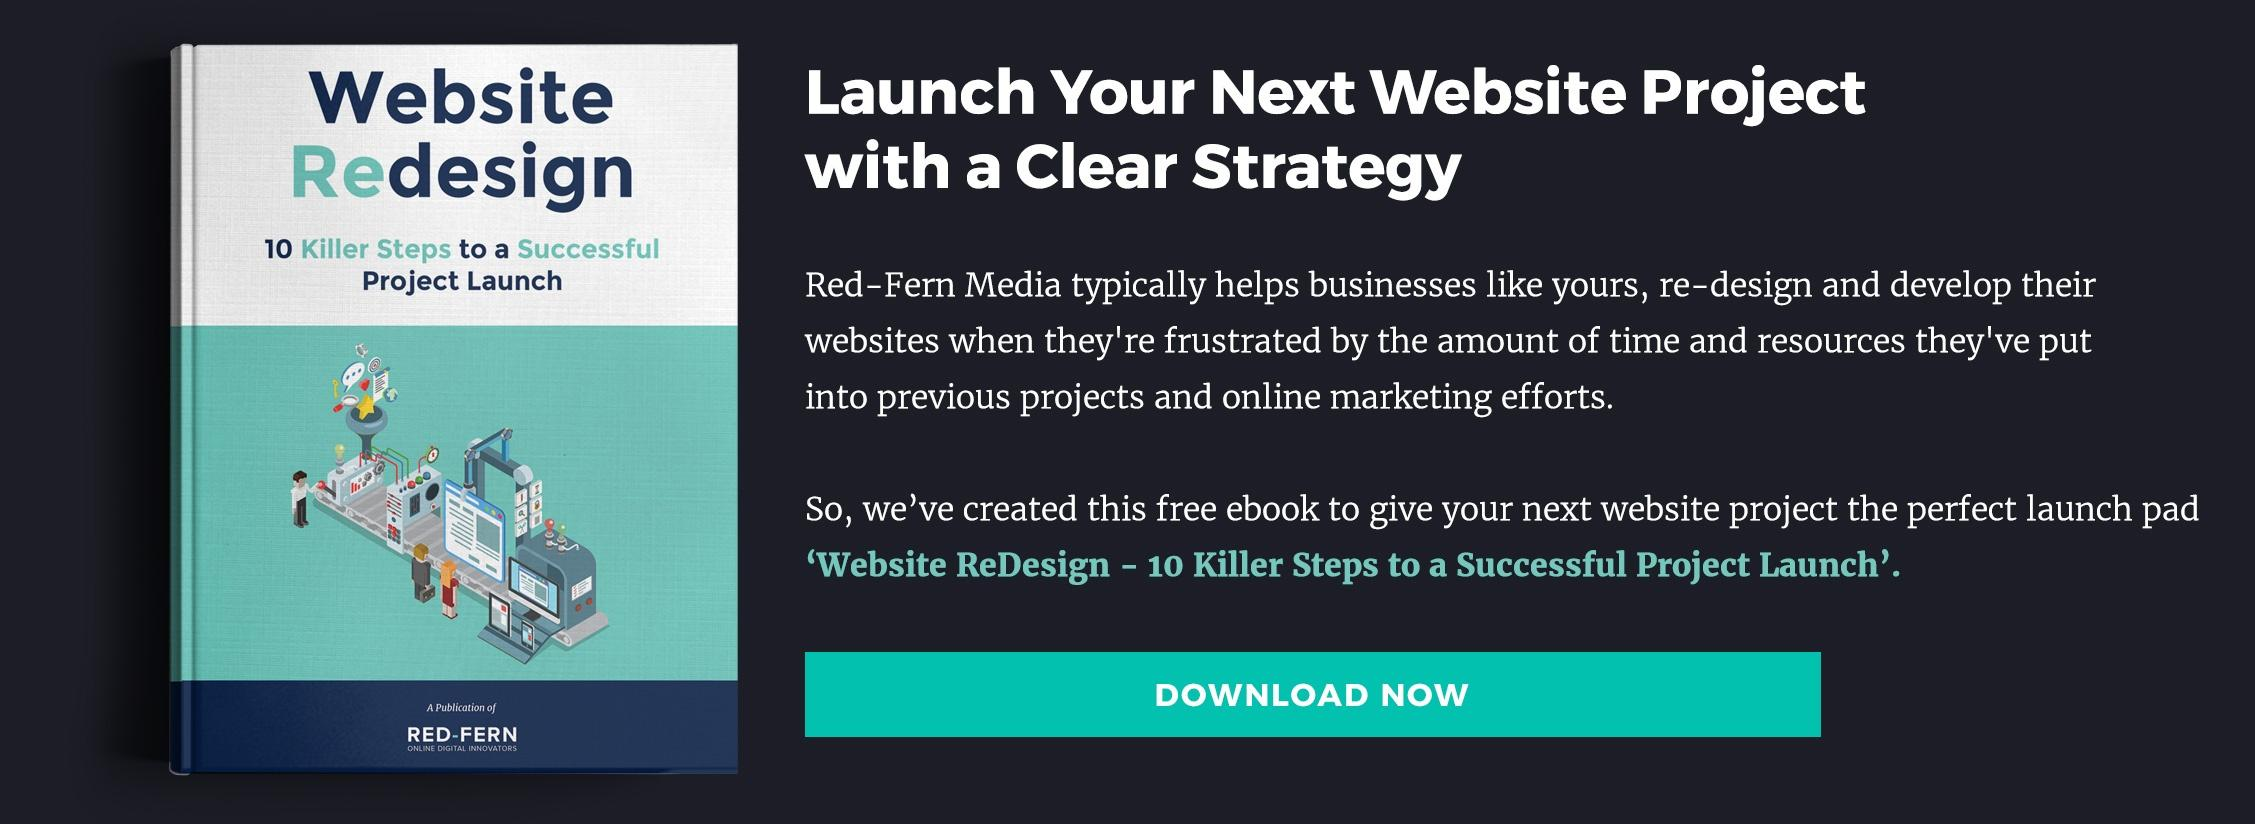 Website Redesign Project Plan 10 Step Guide With Template